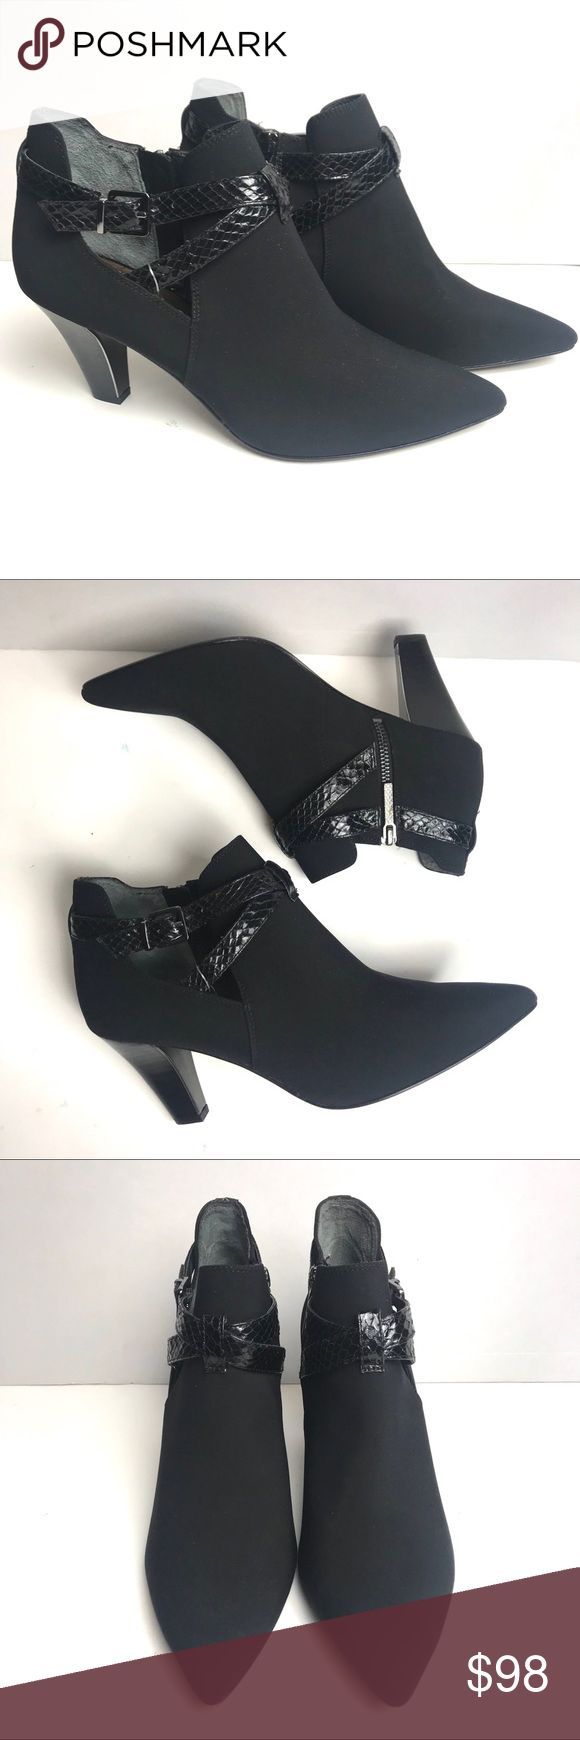 Donald J Pliner Tamy Women Pointed Toe Ankle Boot New without box! Donald J Pliner Tamy Women Pointed Toe Synthetic Black Ankle Boots Size 10  Some marking on soles! Please review all pictures  S10 Donald J. Pliner Shoes Ankle Boots & Booties